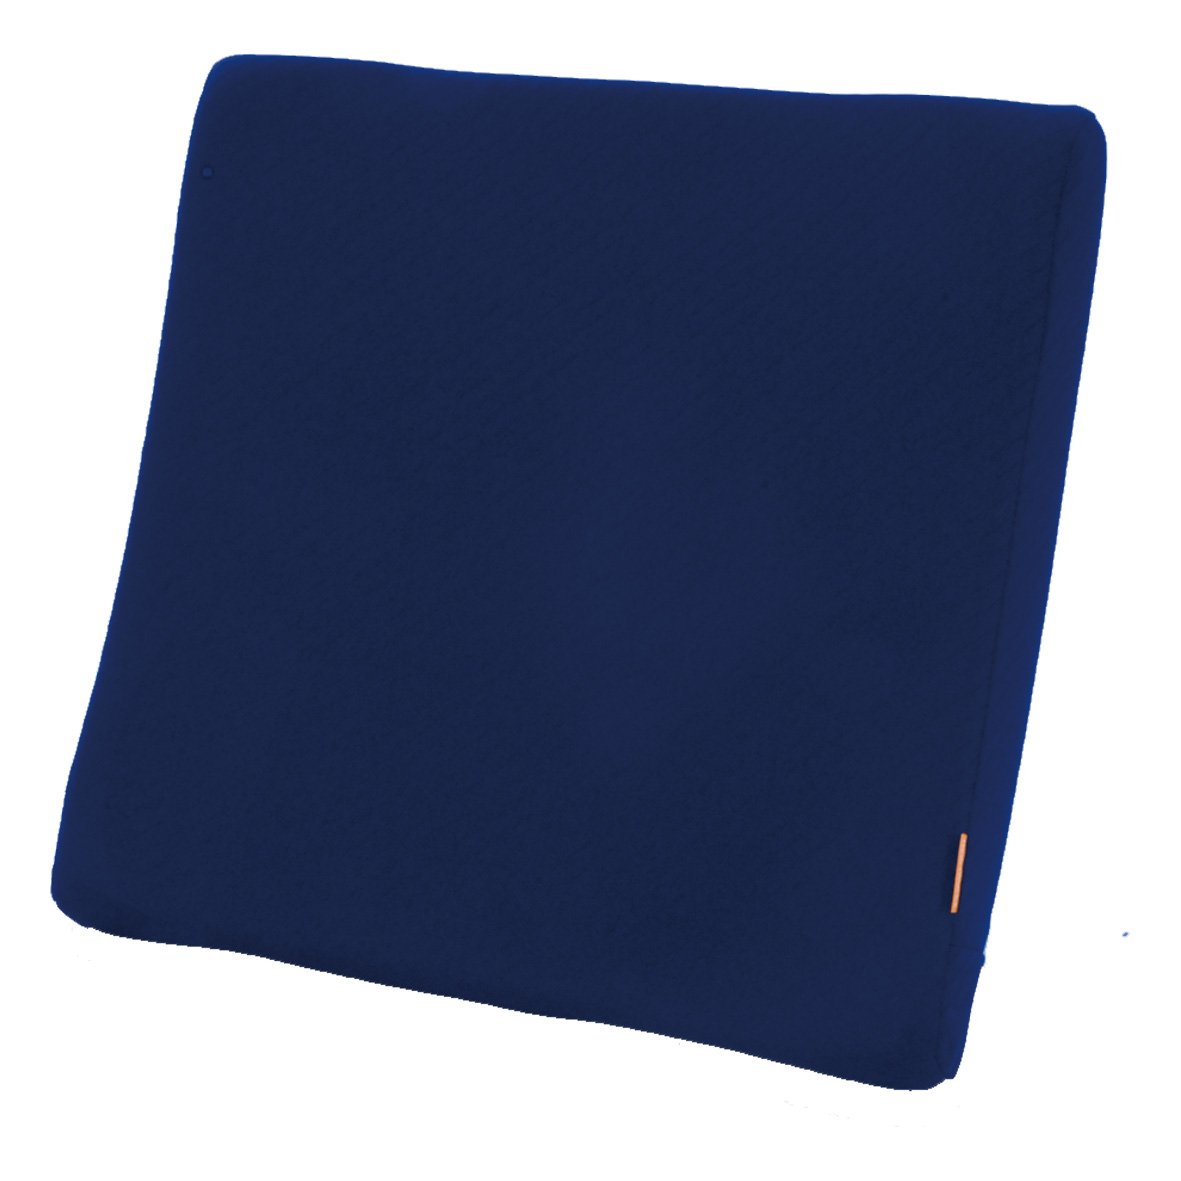 Japan Health and Beauty - Takano cushion for wheelchair (for the back) TC-R010 Blue *AF27*